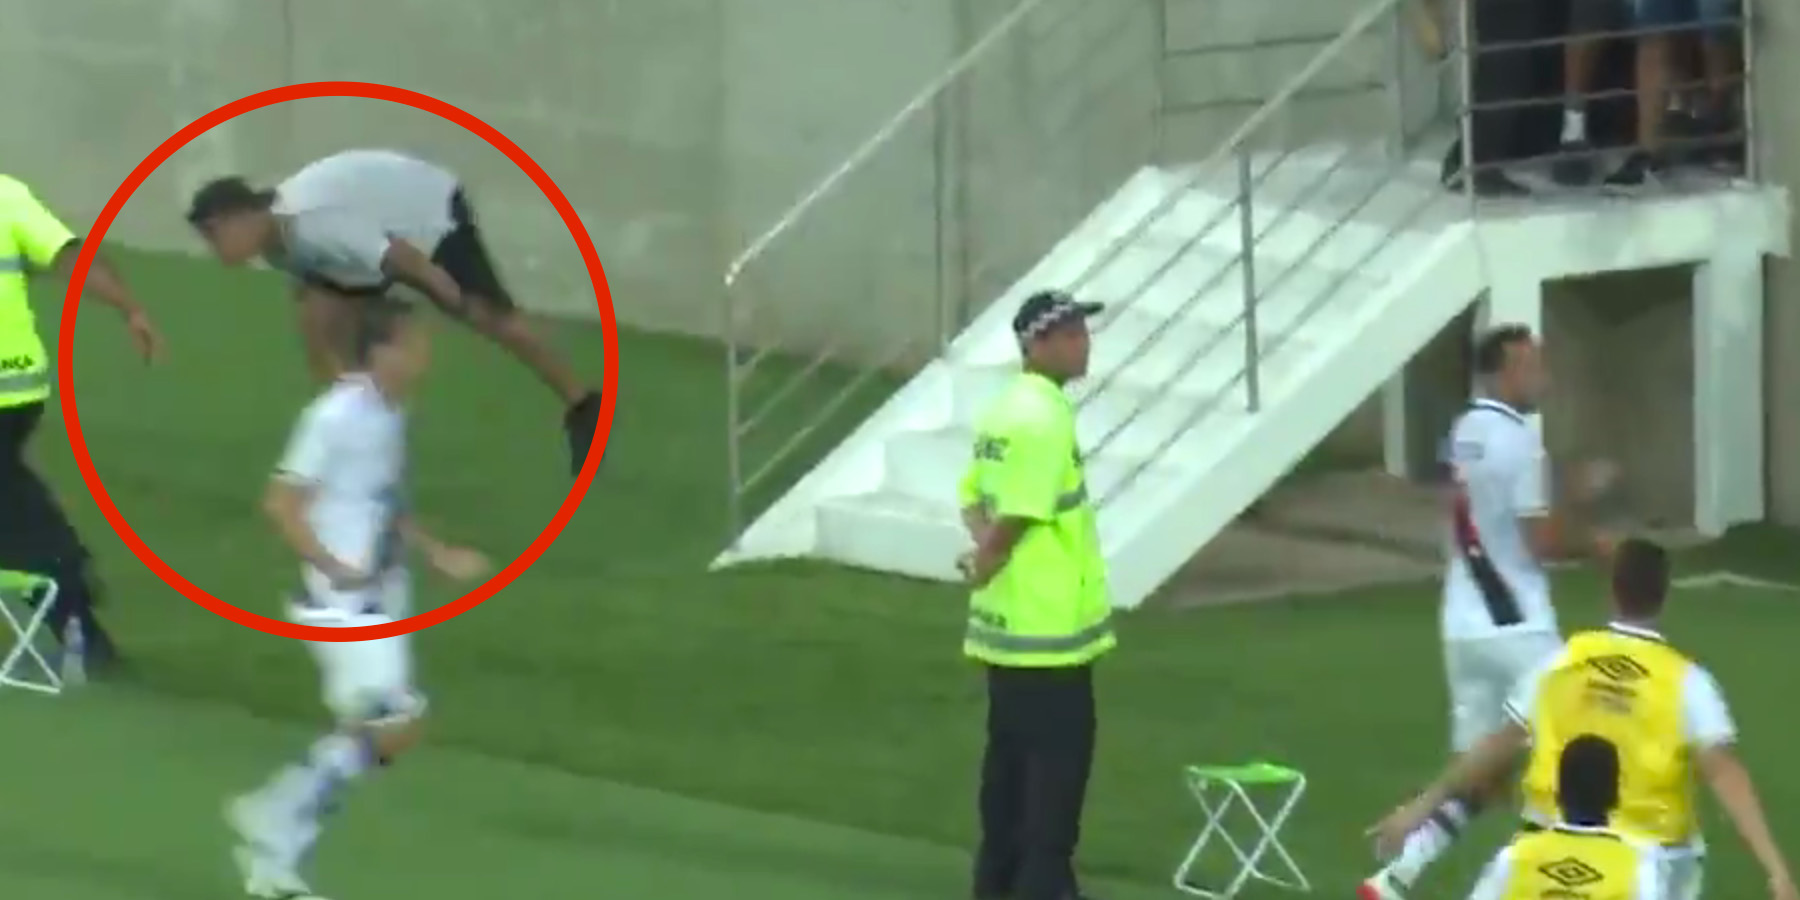 WATCH: This Is Why You Shouldn't Invade The Pitch When You're Pissed